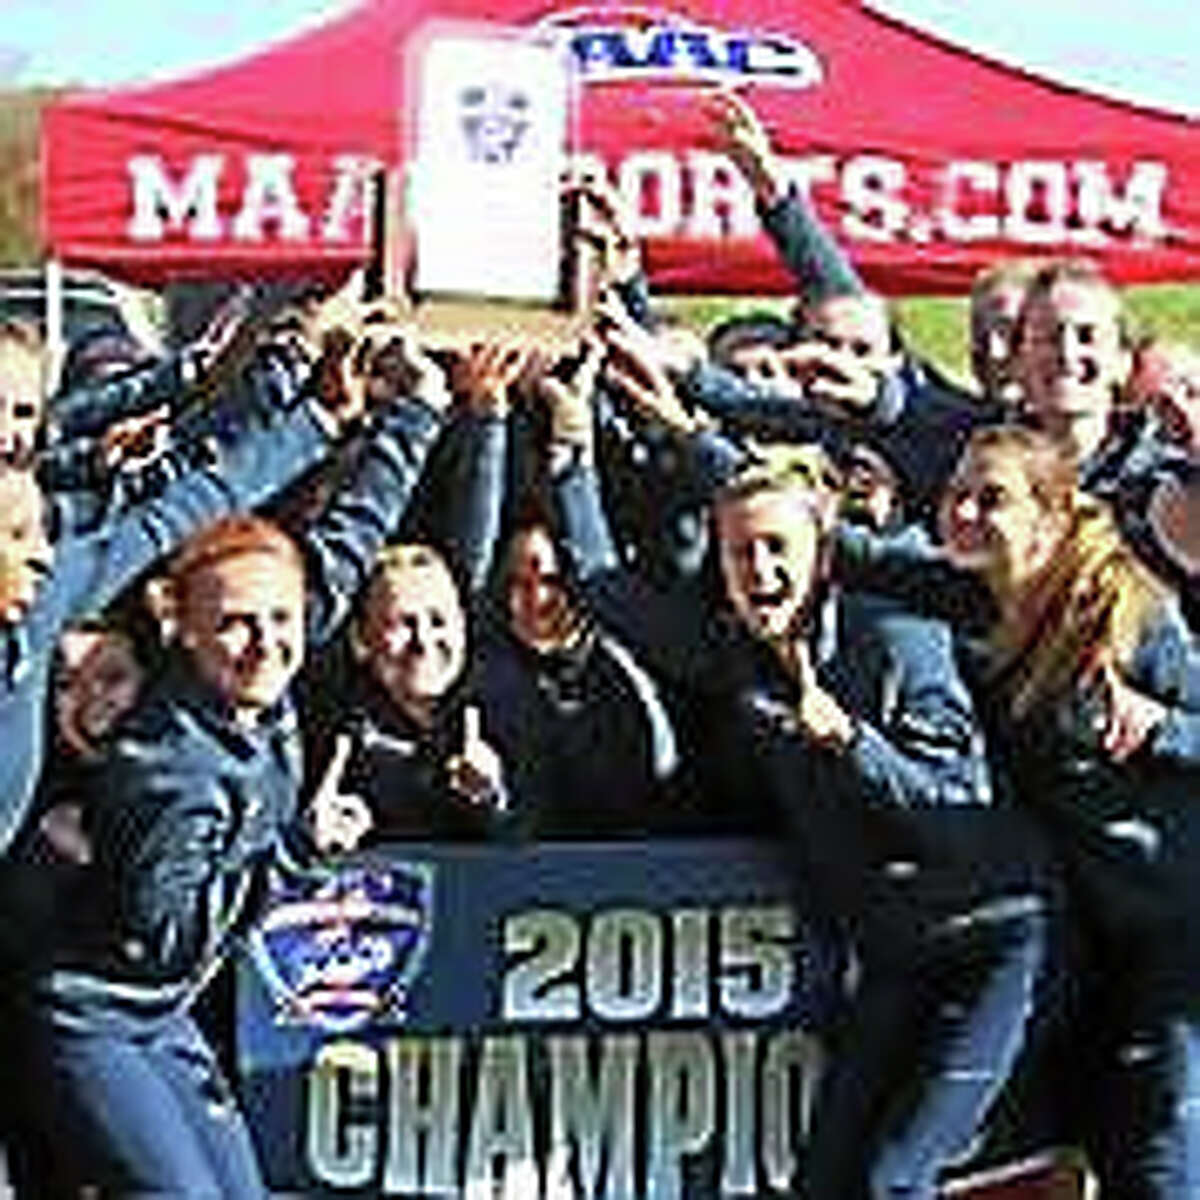 Members of the Quinnipiac women's cross country team celebrate after winning the MAAC championship on Oct. 31.